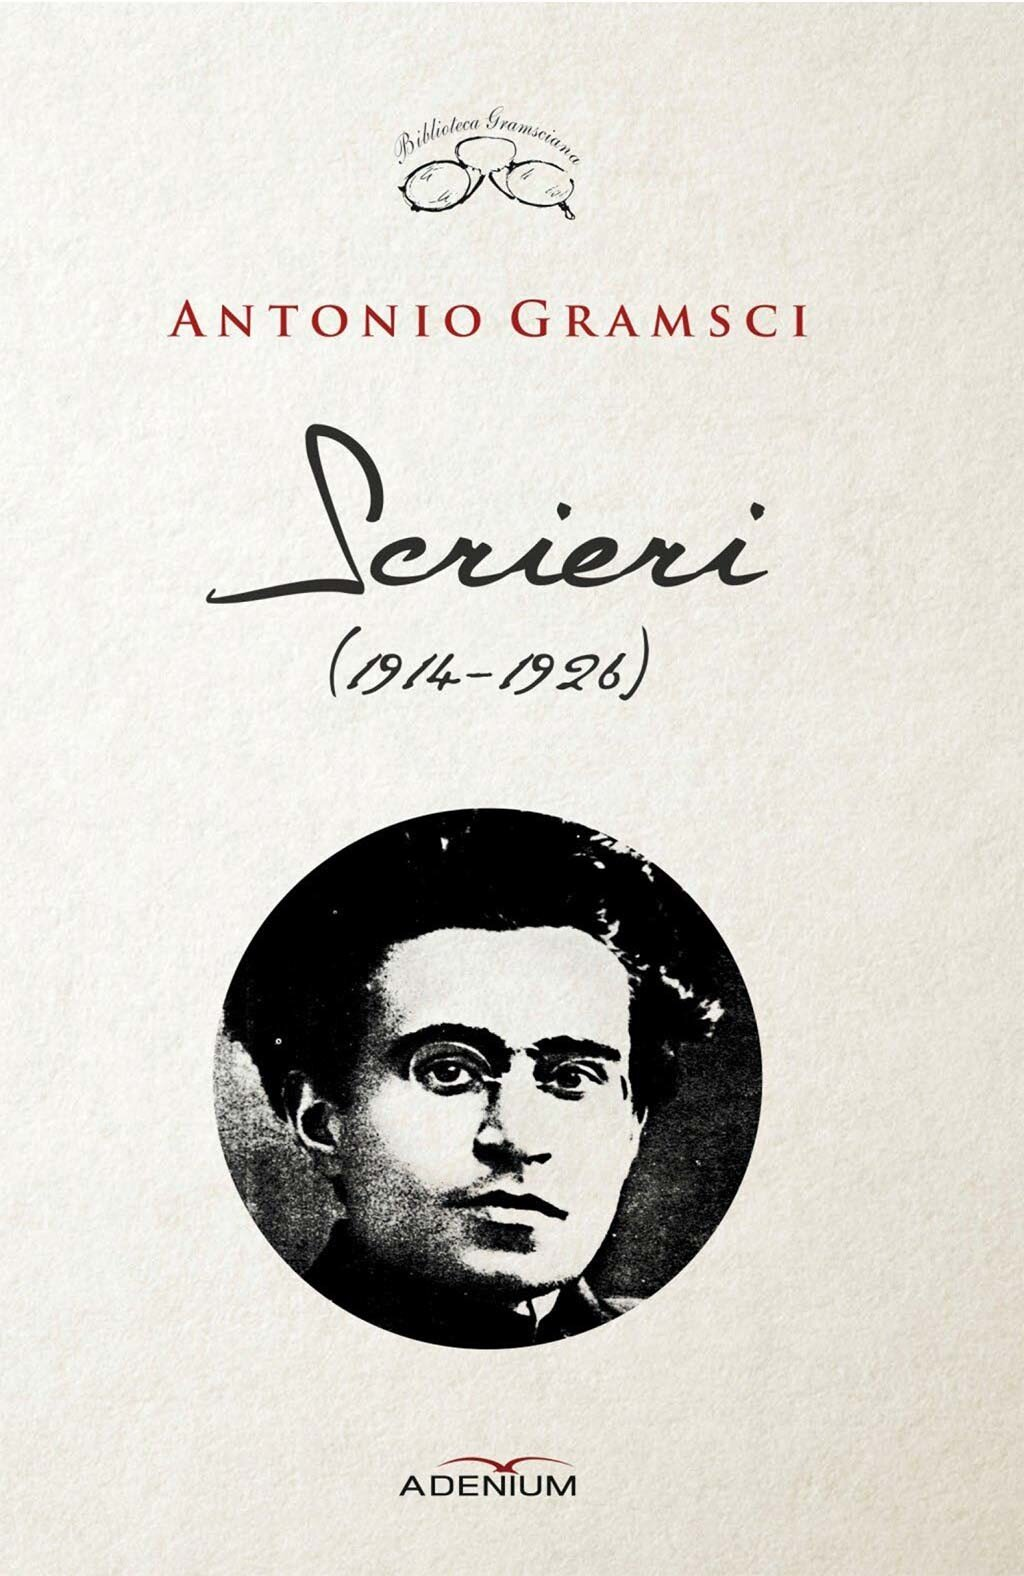 Scrieri (1914-1926) PDF (Download eBook)